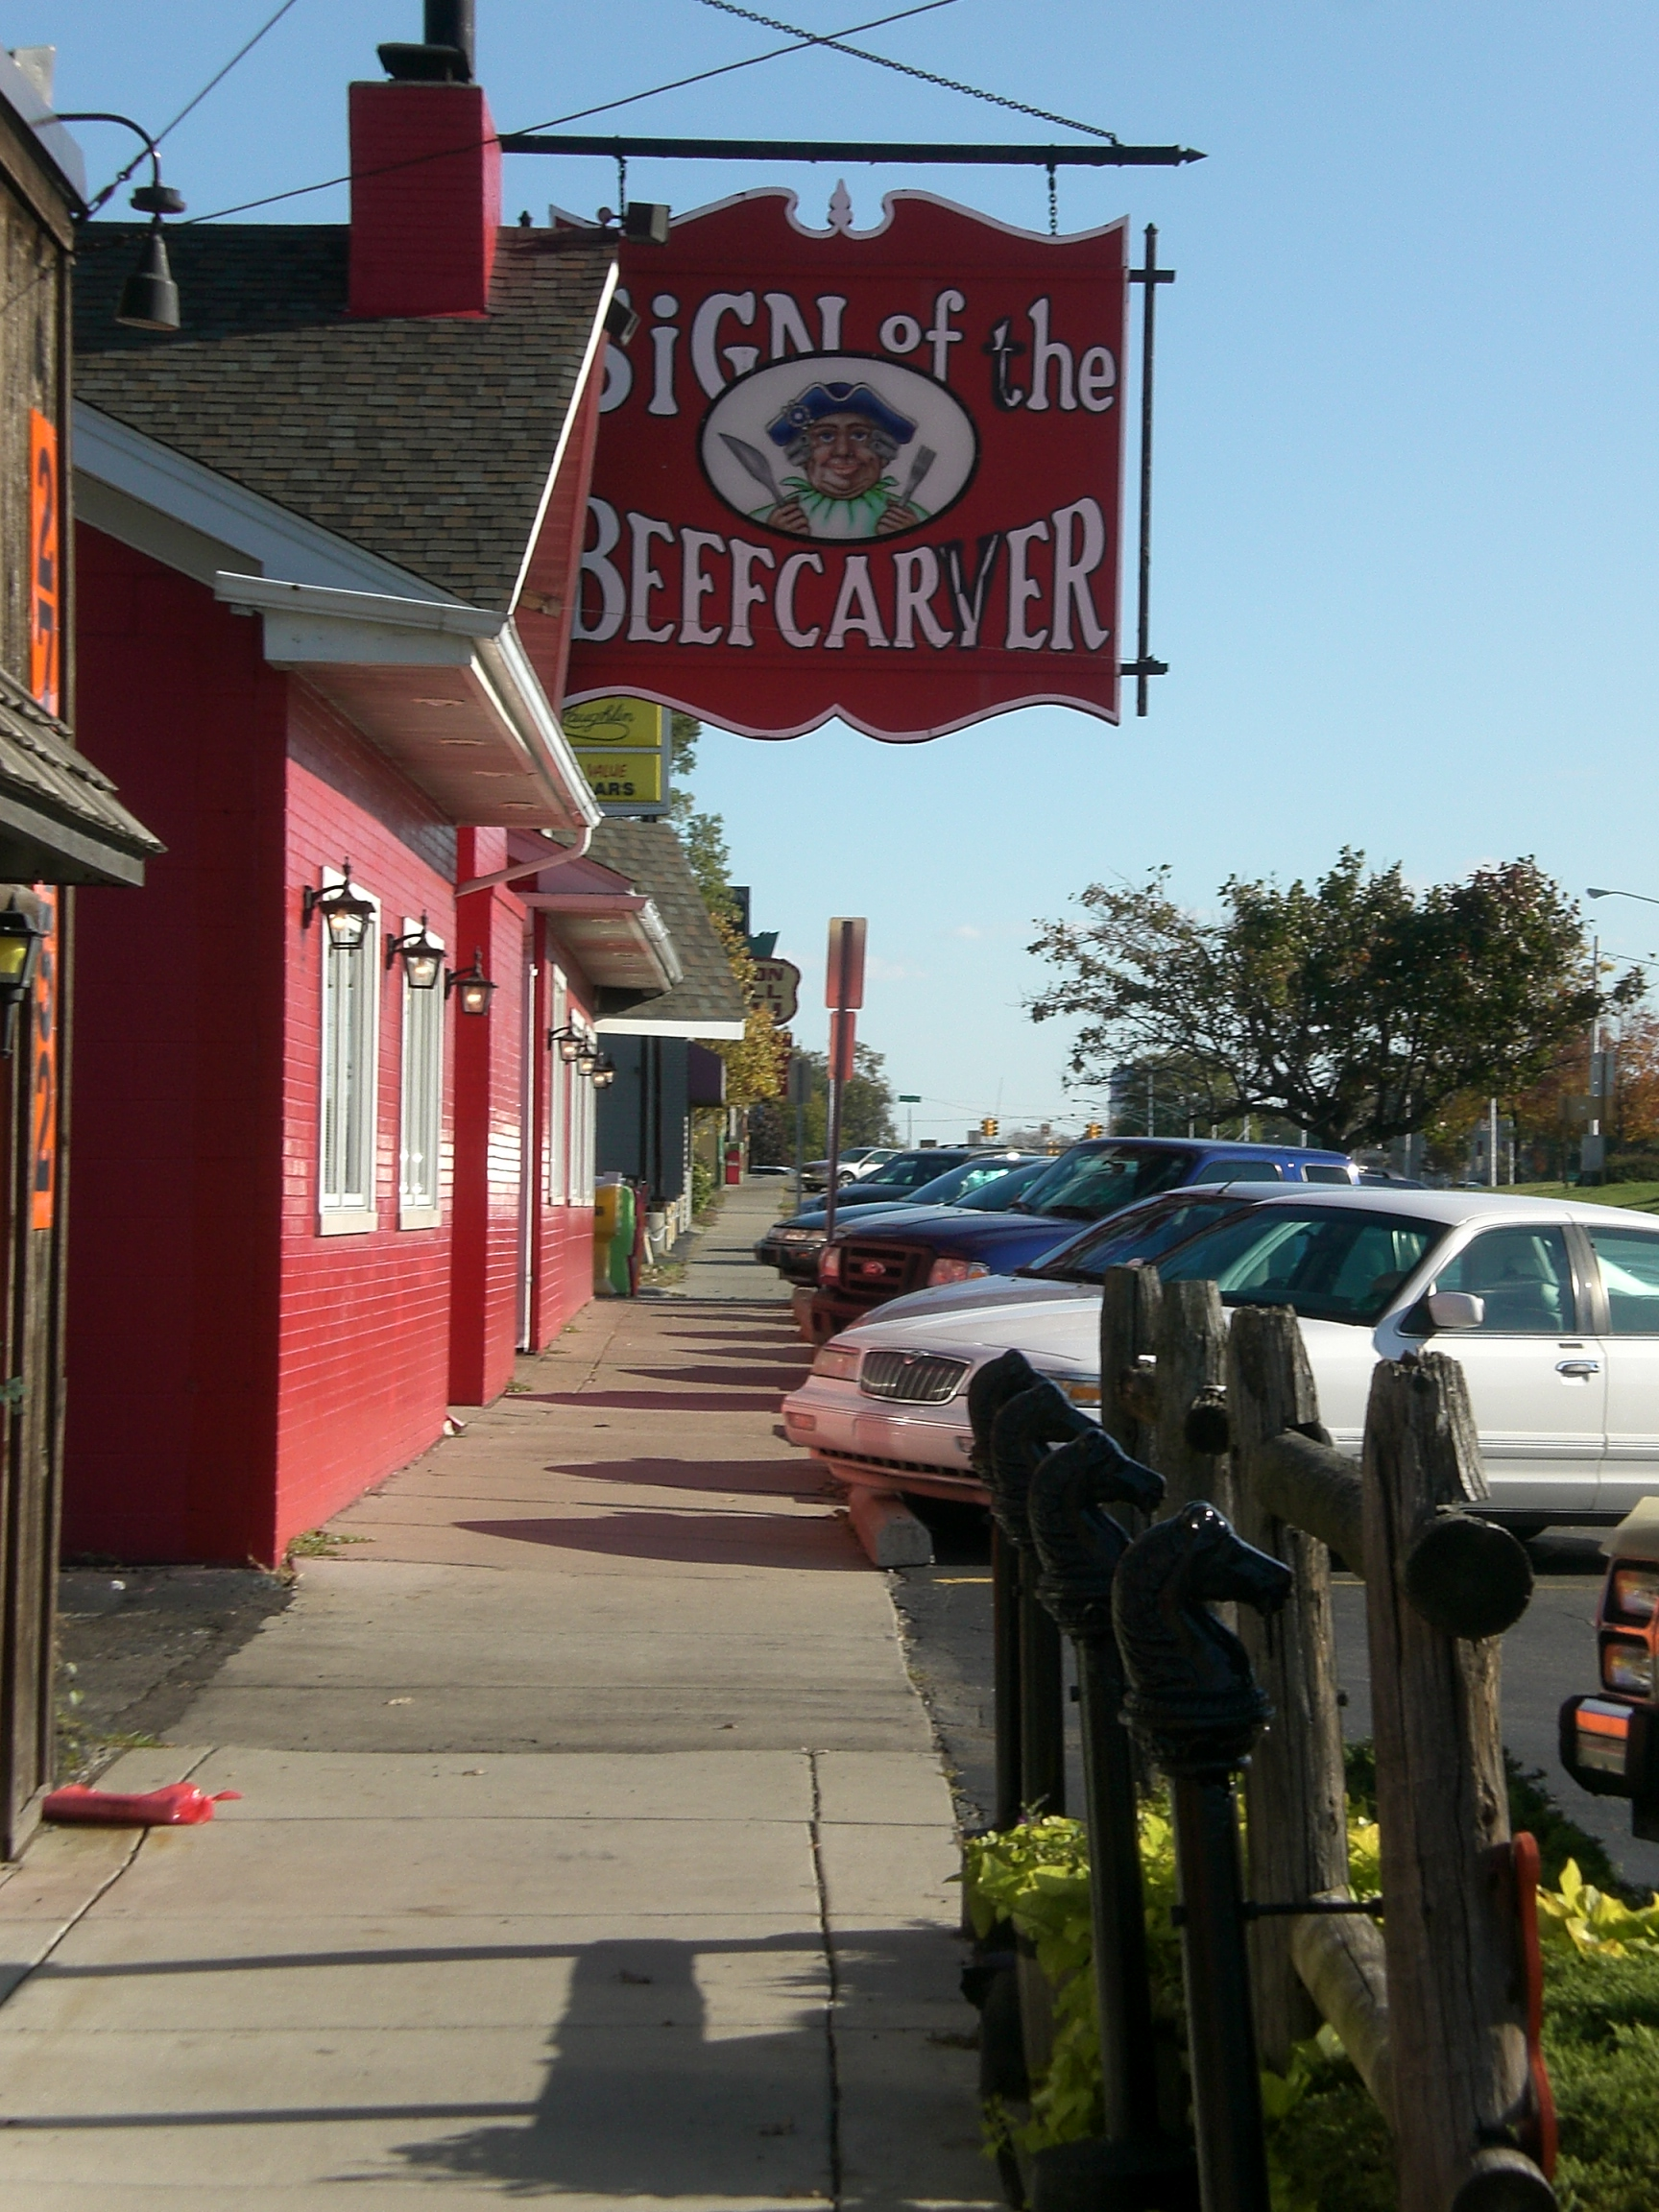 Dearborn Sign of the Beefcarver closes after nearly 50 years